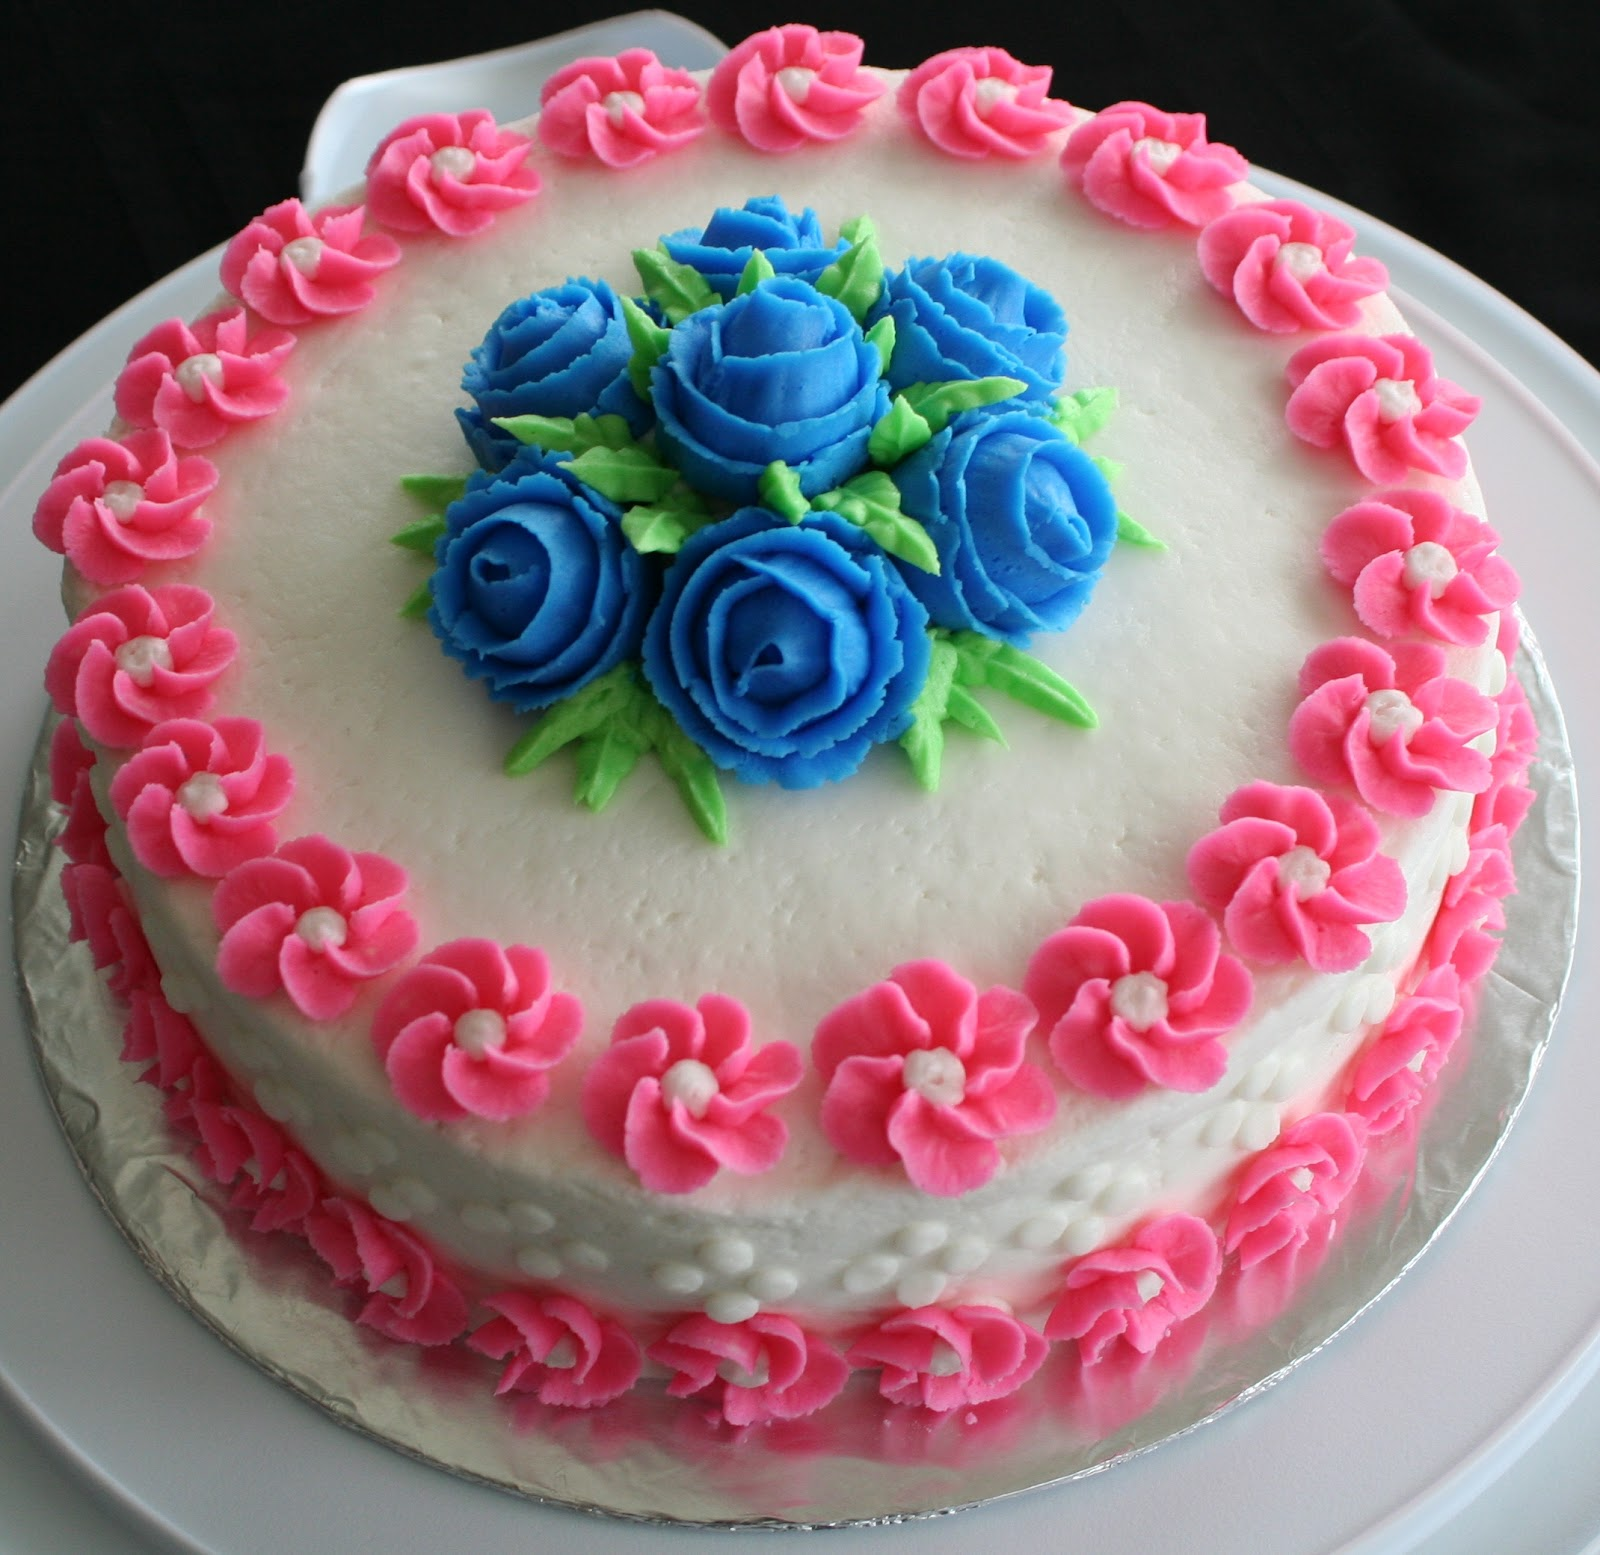 Wilton Buttercream Cake Decorating Ideas : Julia s Baking Adventures: Wilton Course 1: Decorating ...